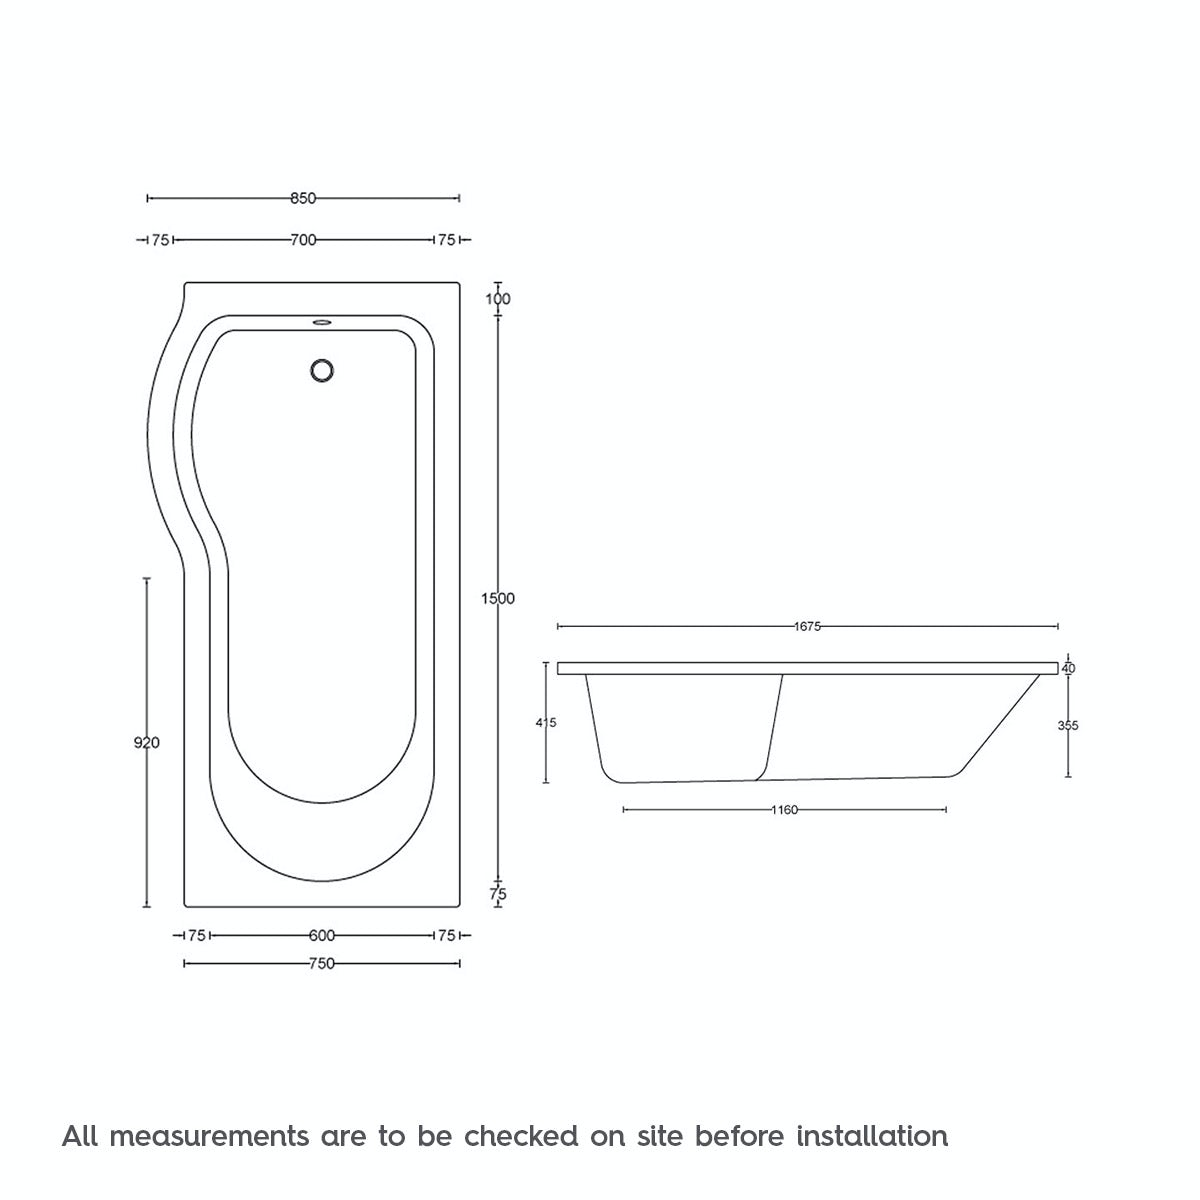 Dimensions for 1675 x 850